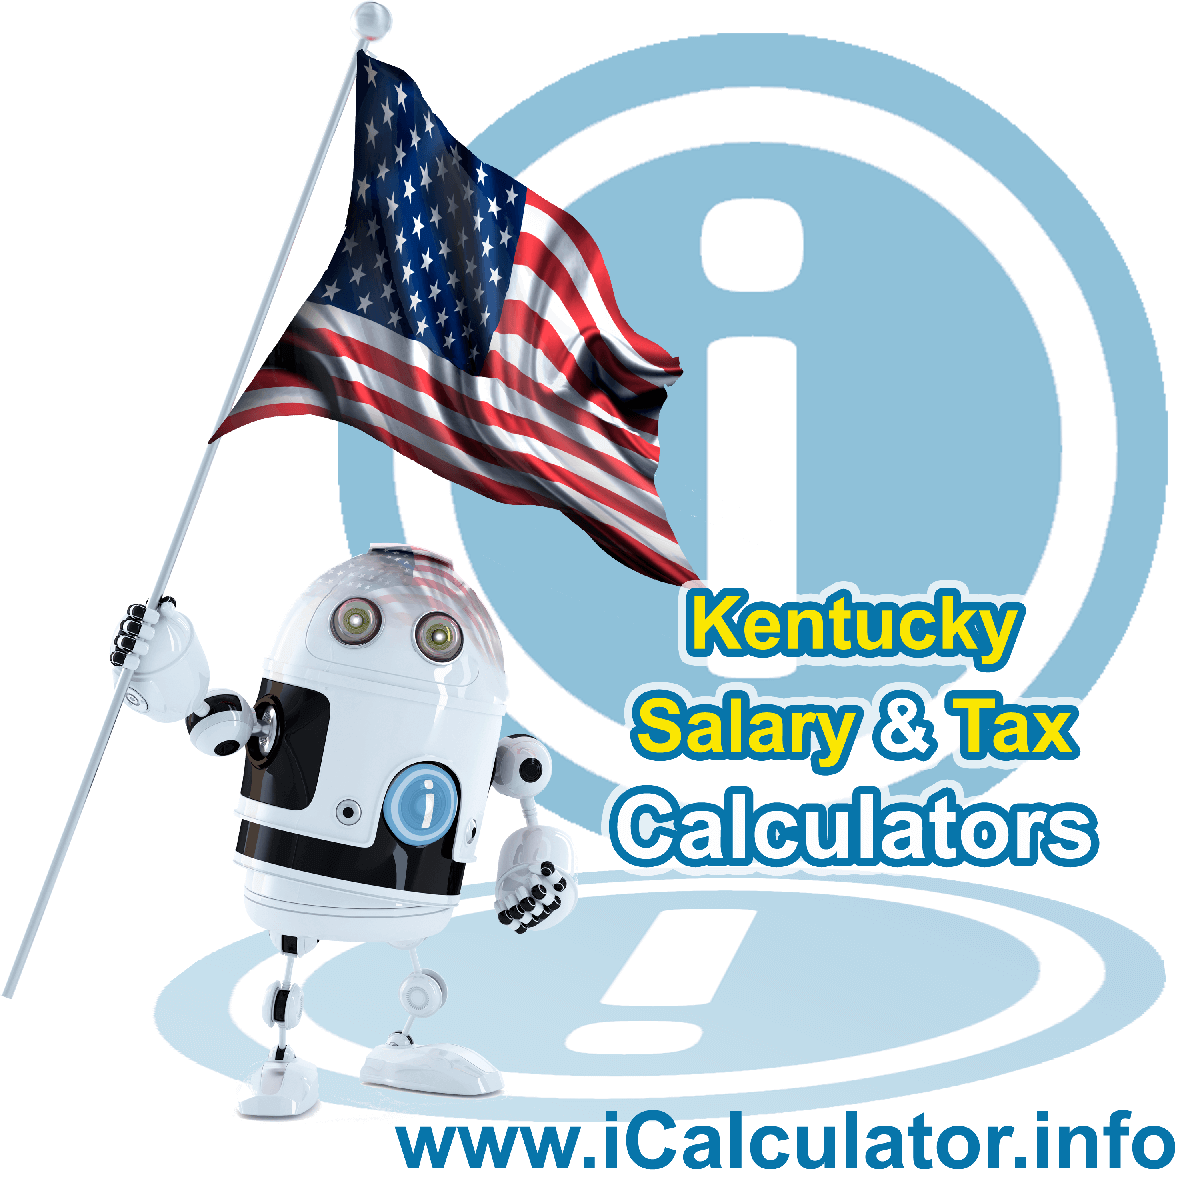 Kentucky Salary Calculator 2021 | iCalculator™ | The Kentucky Salary Calculator allows you to quickly calculate your salary after tax including Kentucky State Tax, Federal State Tax, Medicare Deductions, Social Security, Capital Gains and other income tax and salary deductions complete with supporting Kentucky state tax tables